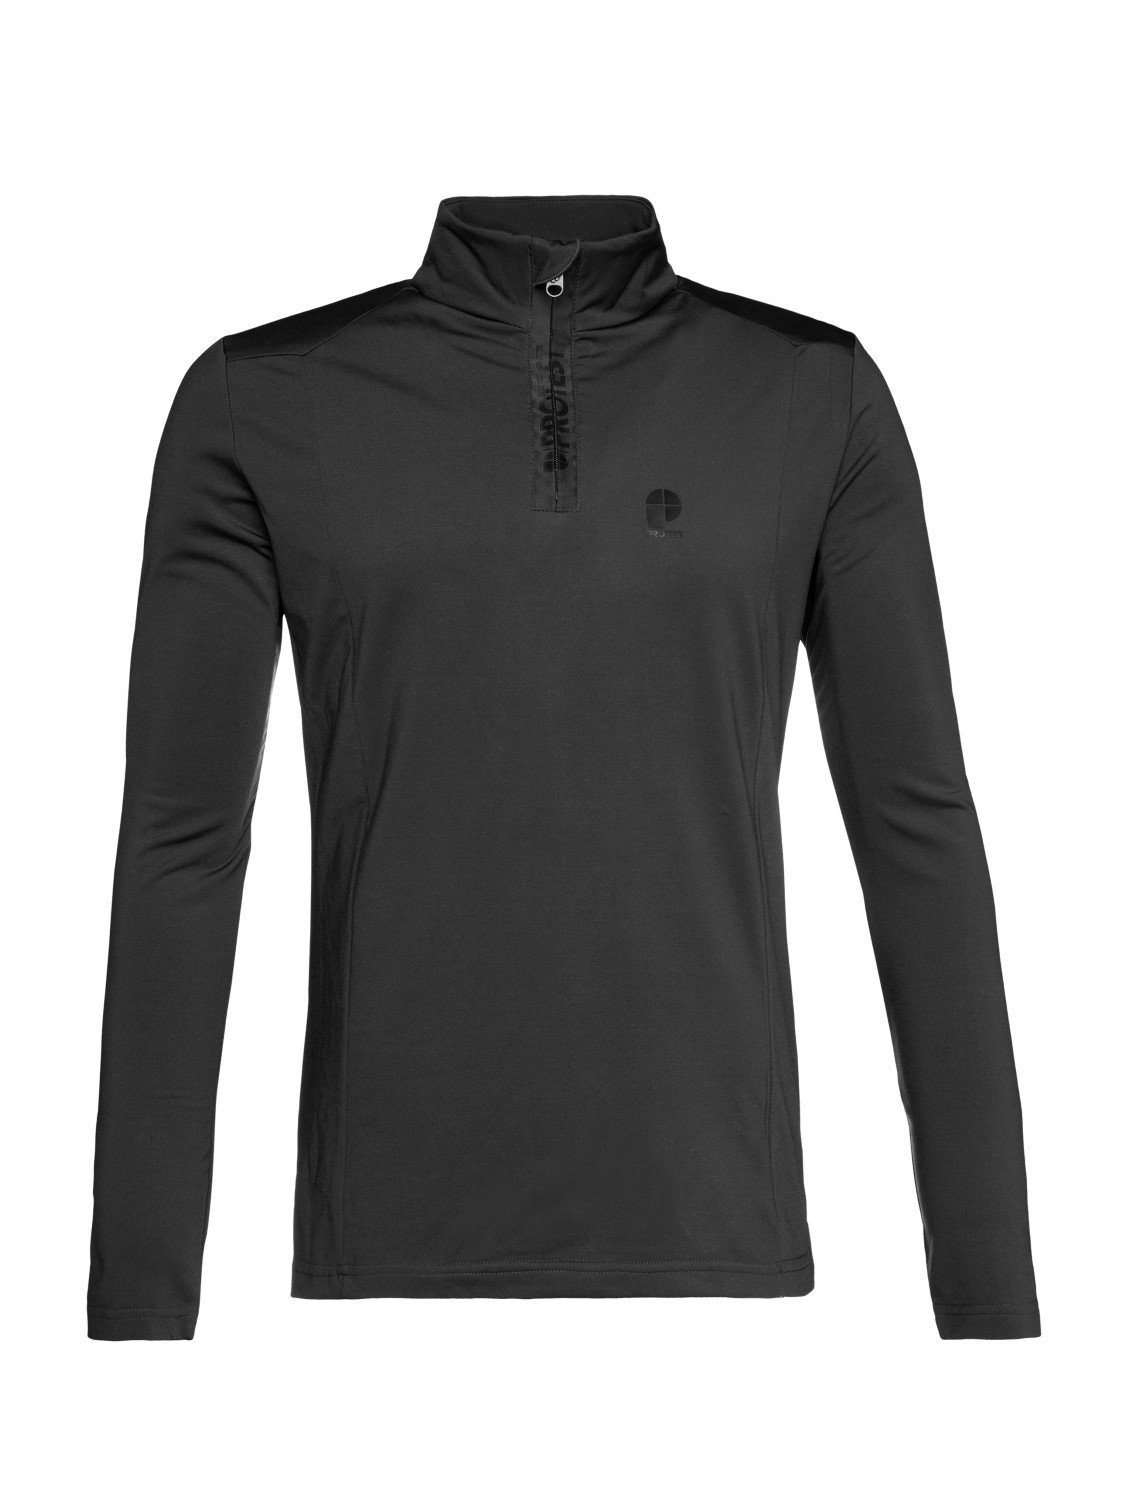 Protest M Will 1/4 Zip Top